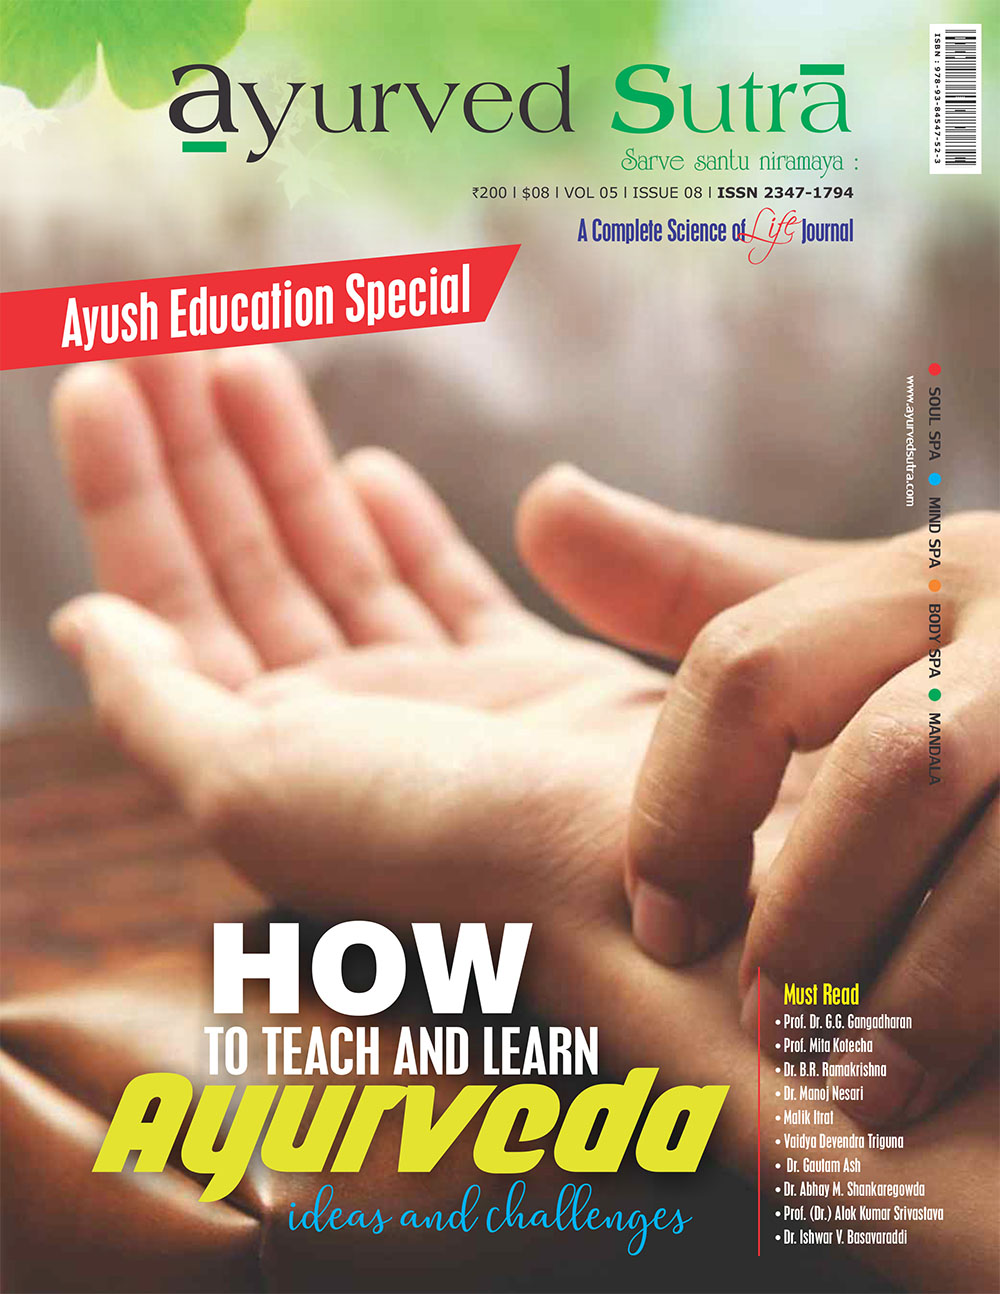 Ayurvedsutra Vol 05 issue 08 1 - How to Teach and Learn Ayurveda